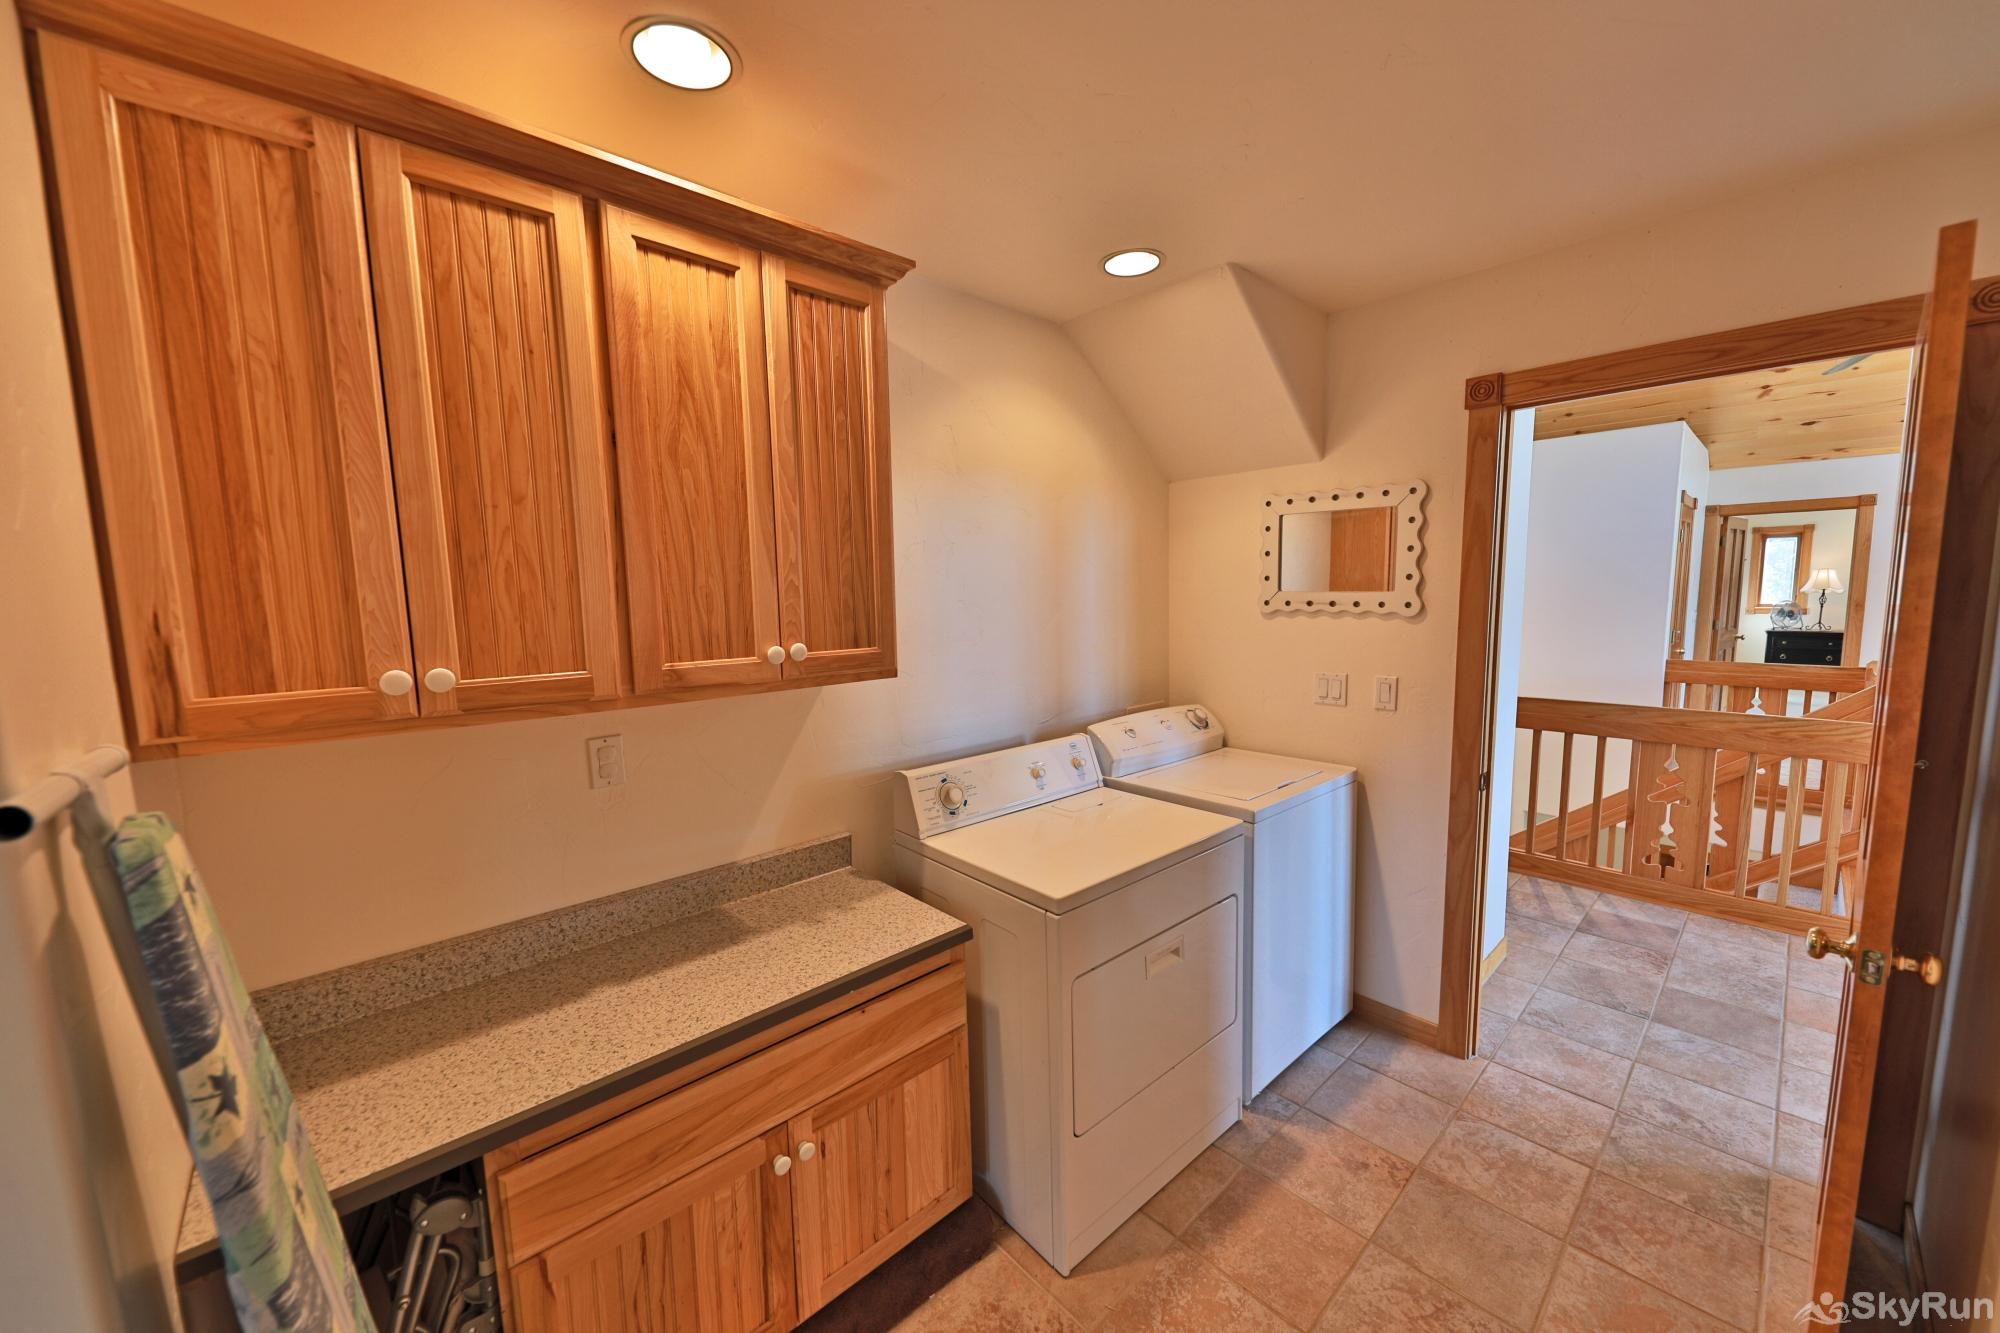 Mountain Peak Laundry Room with Full Sized Washers